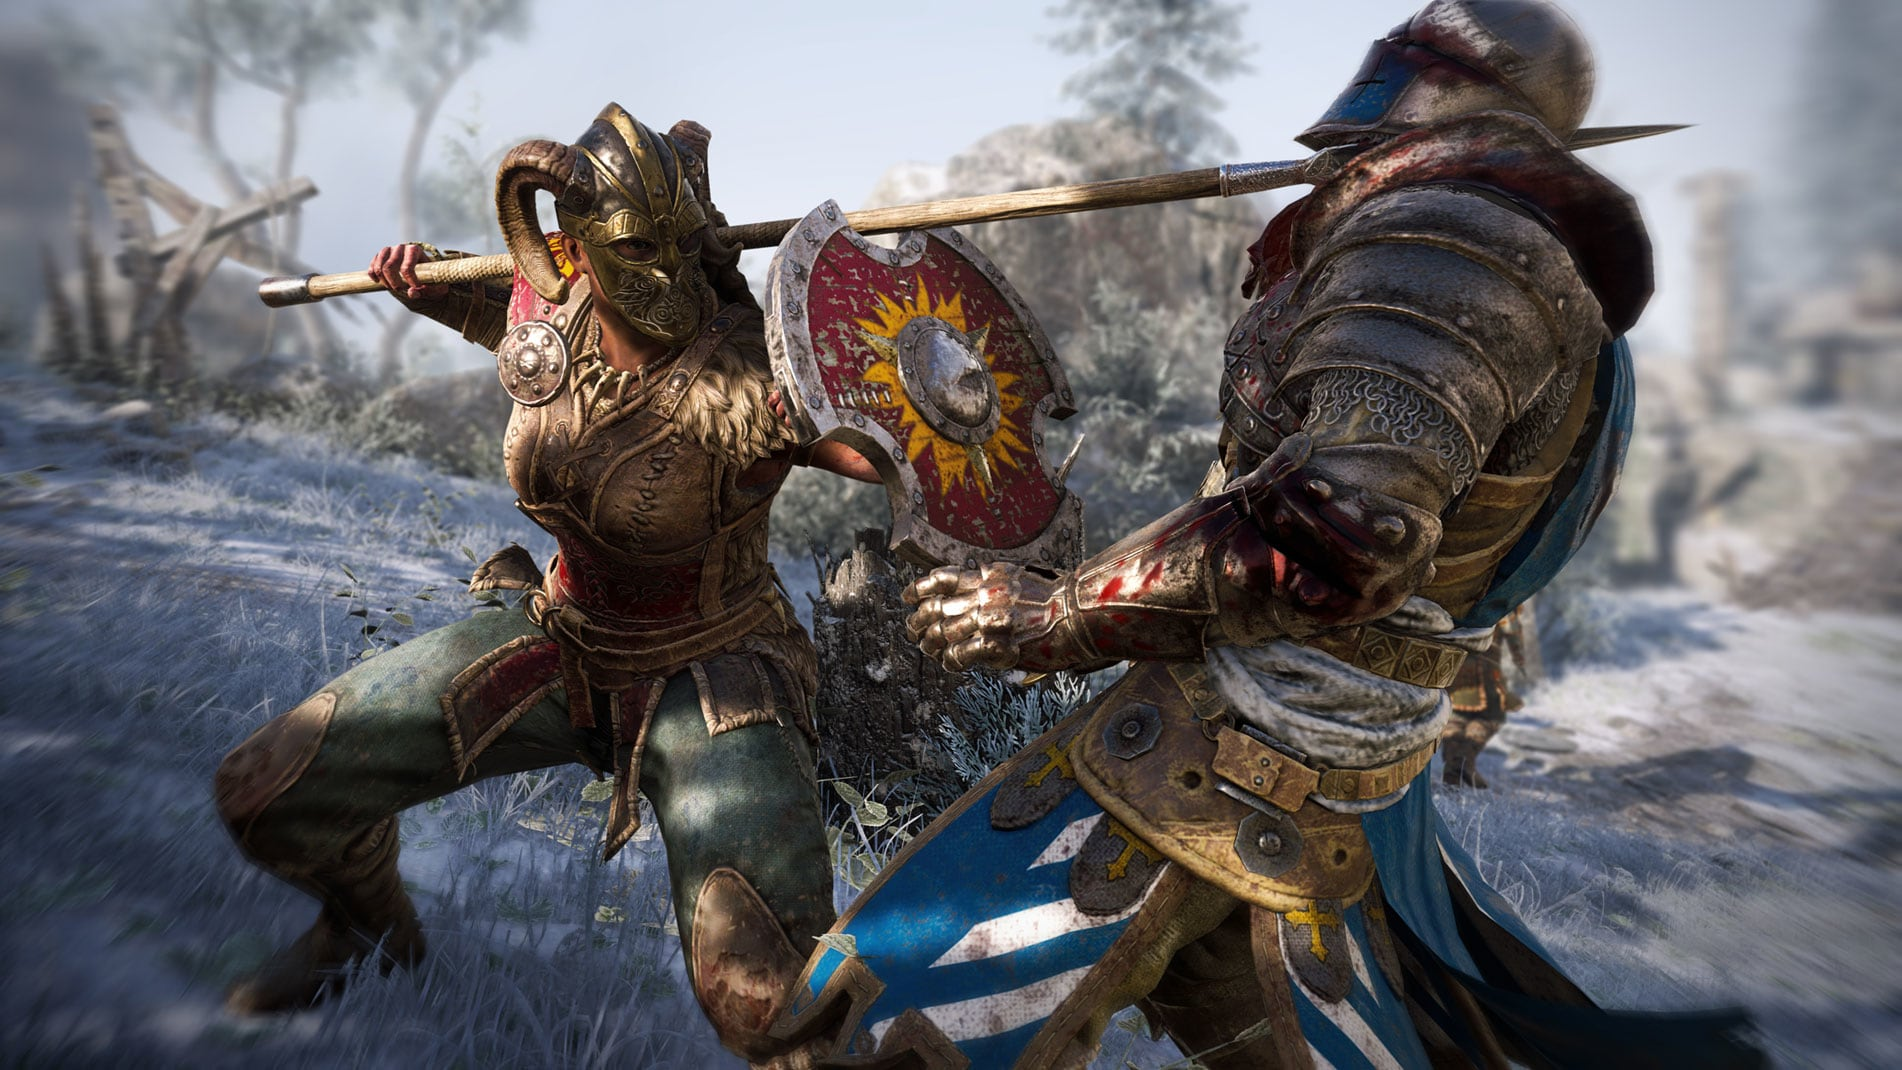 For Honor: 10 Einsteiger-Tipps im Video – So meistert ihr das Gameplay